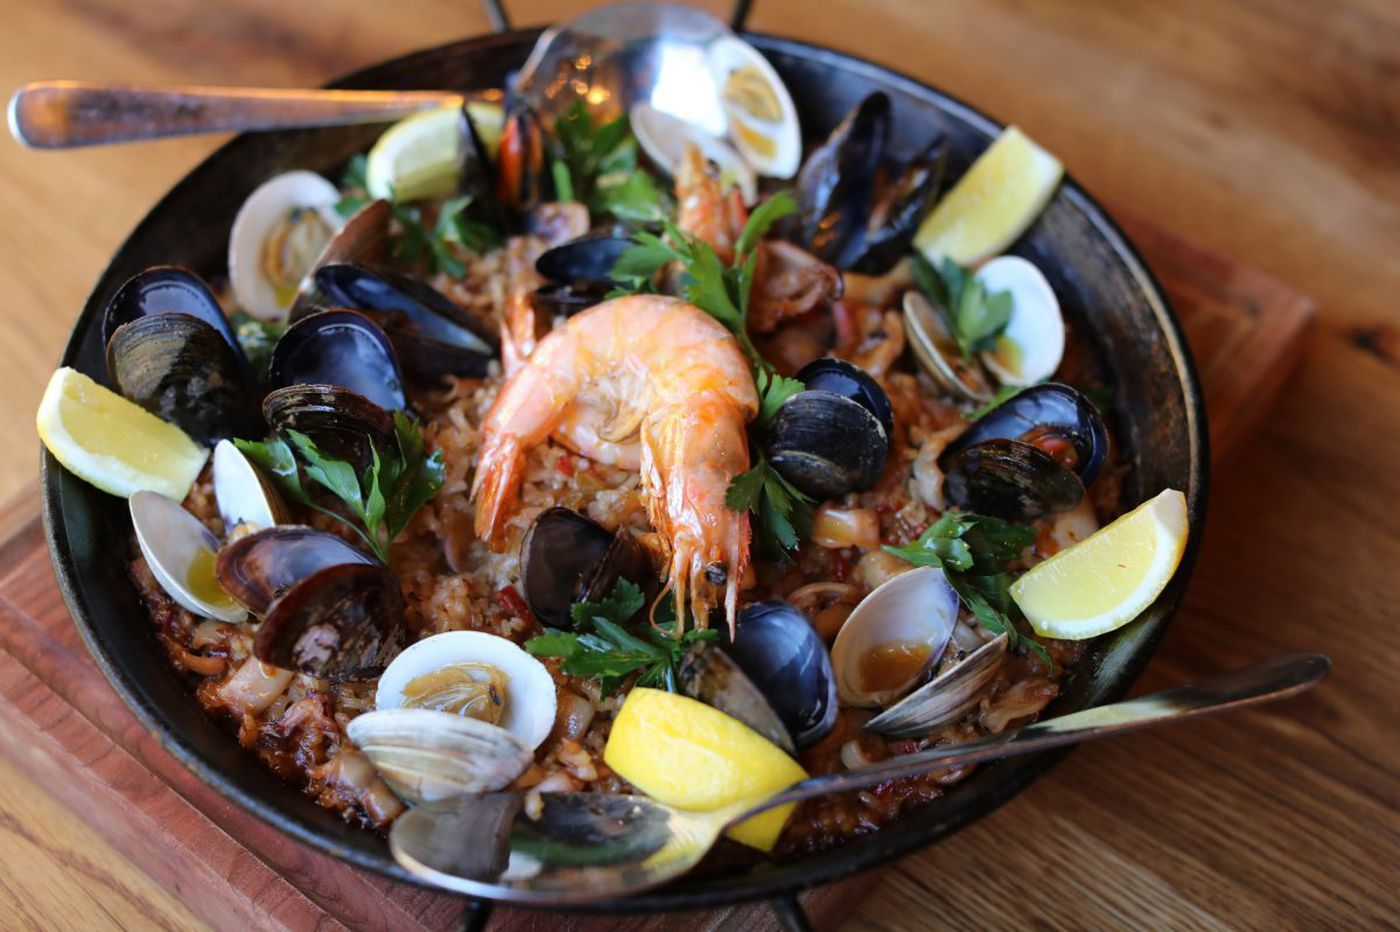 Stylish Spanish chain Barcelona brings tapas, wine, buzz and angst to indie-minded East Passyunk